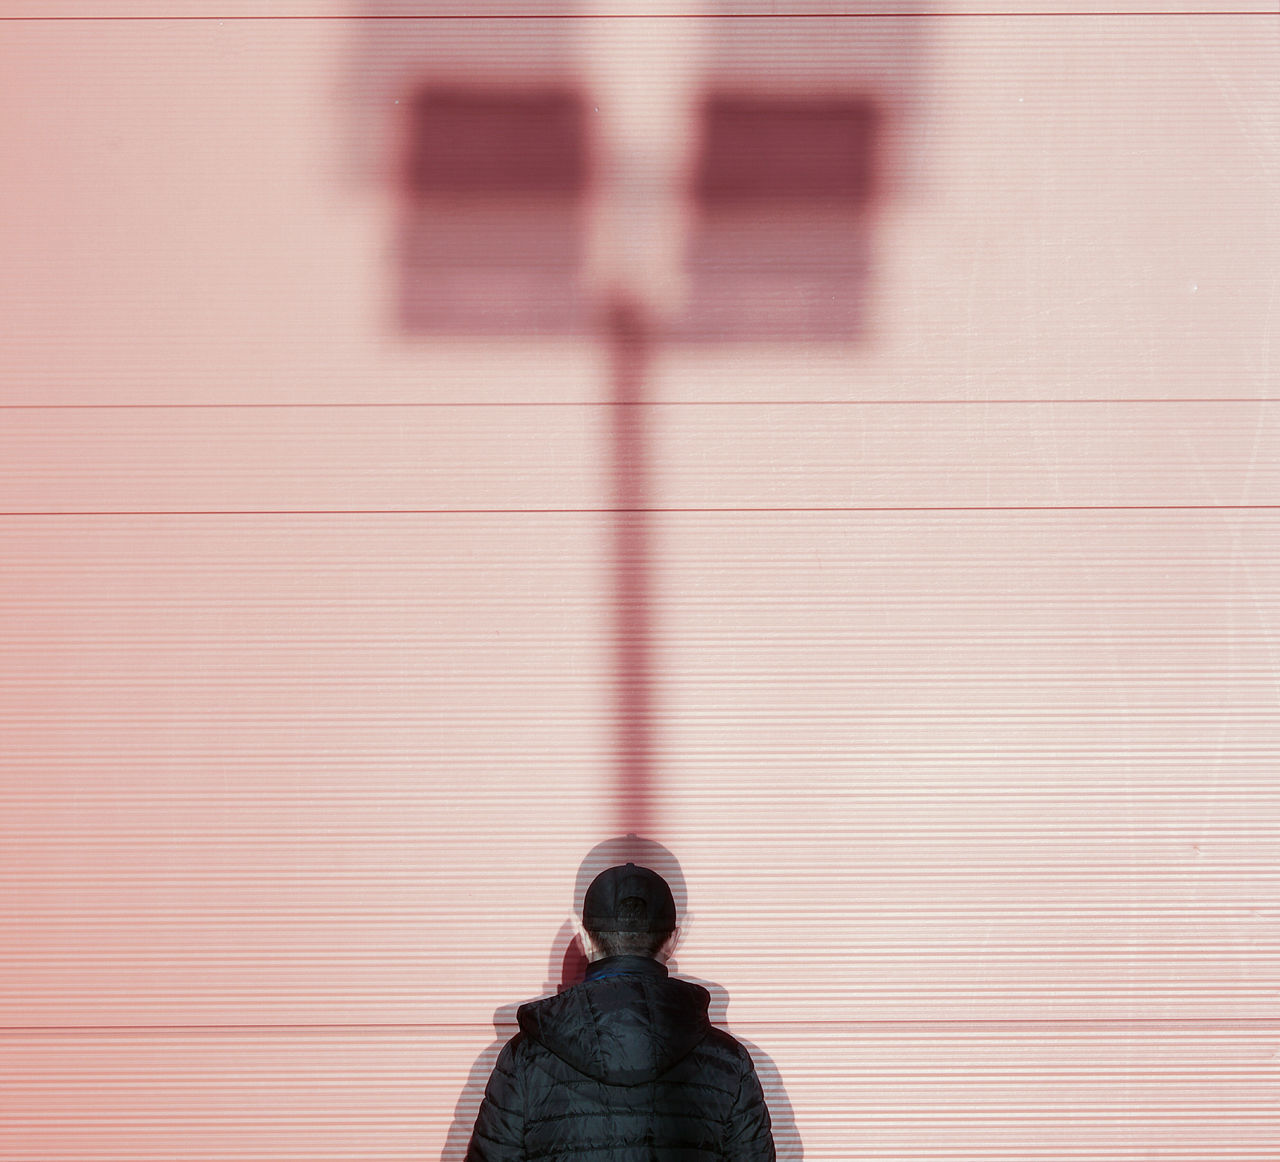 Rear View Of Man Standing Against Wall